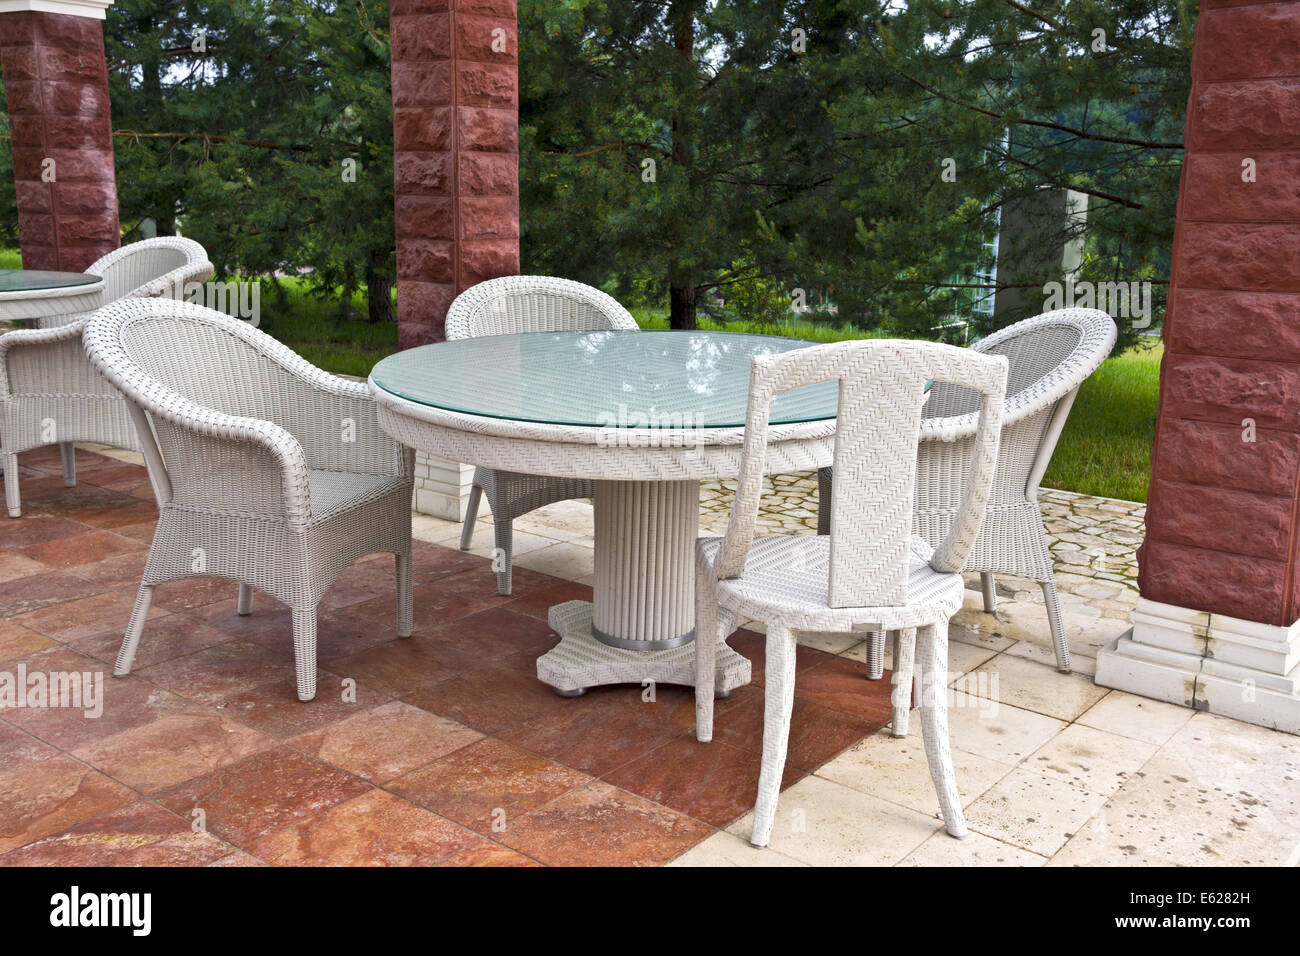 white table and chairs patio furniture in a garden s gazibo stock image